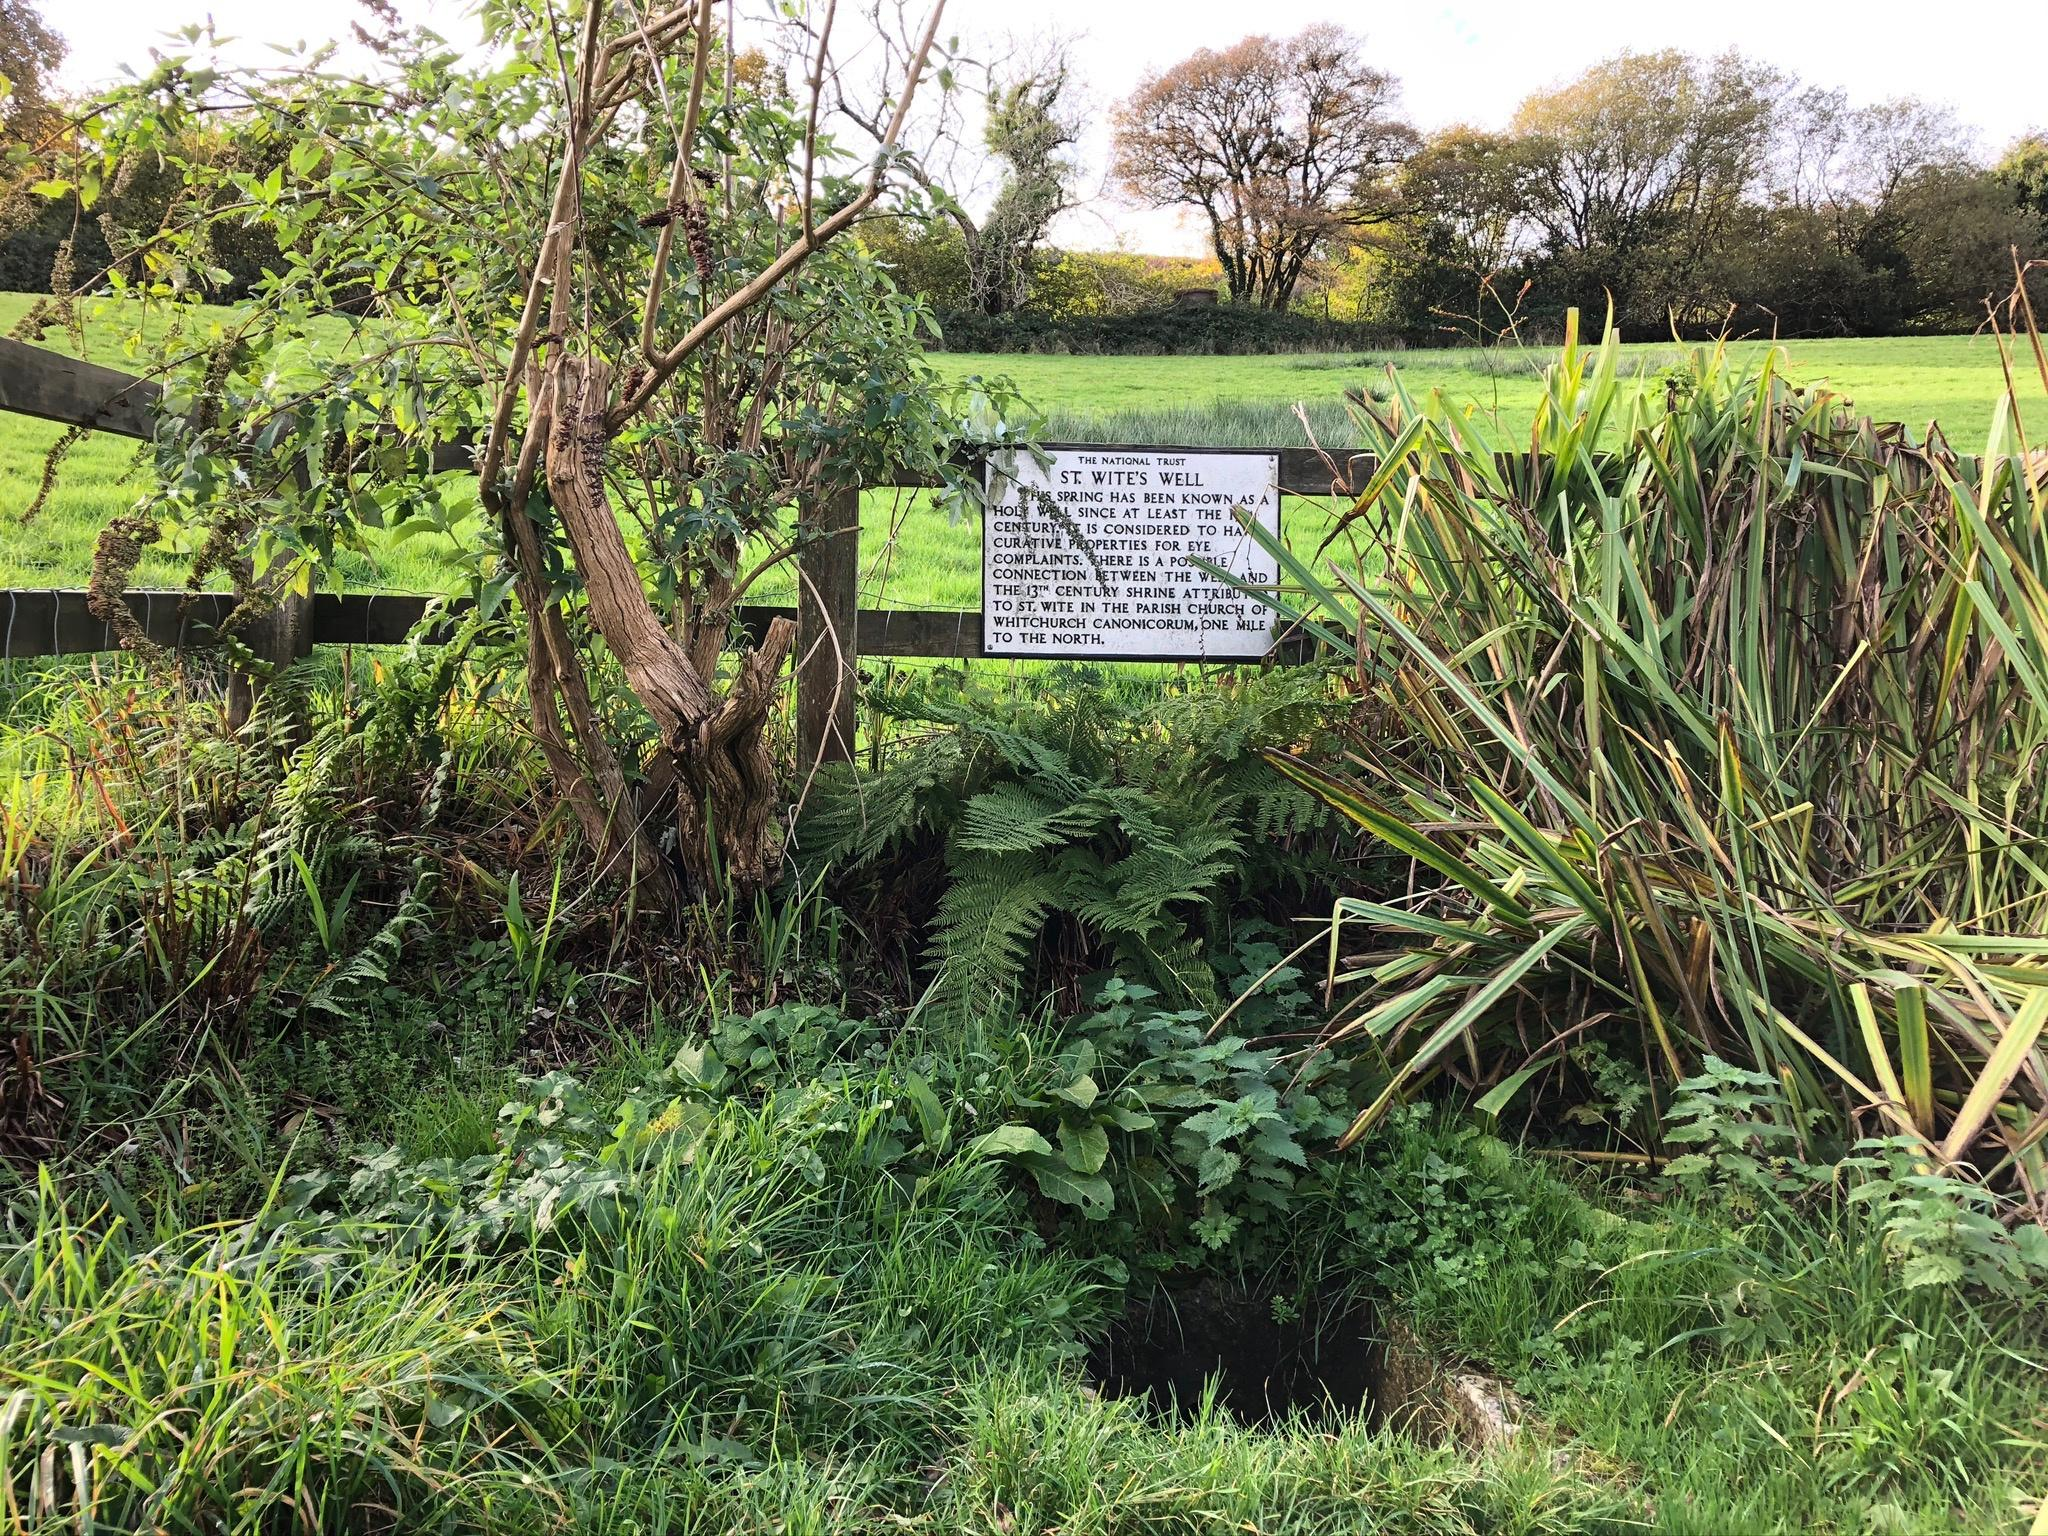 Country diary: St Wite's Well is a dangerous temptation to walkers